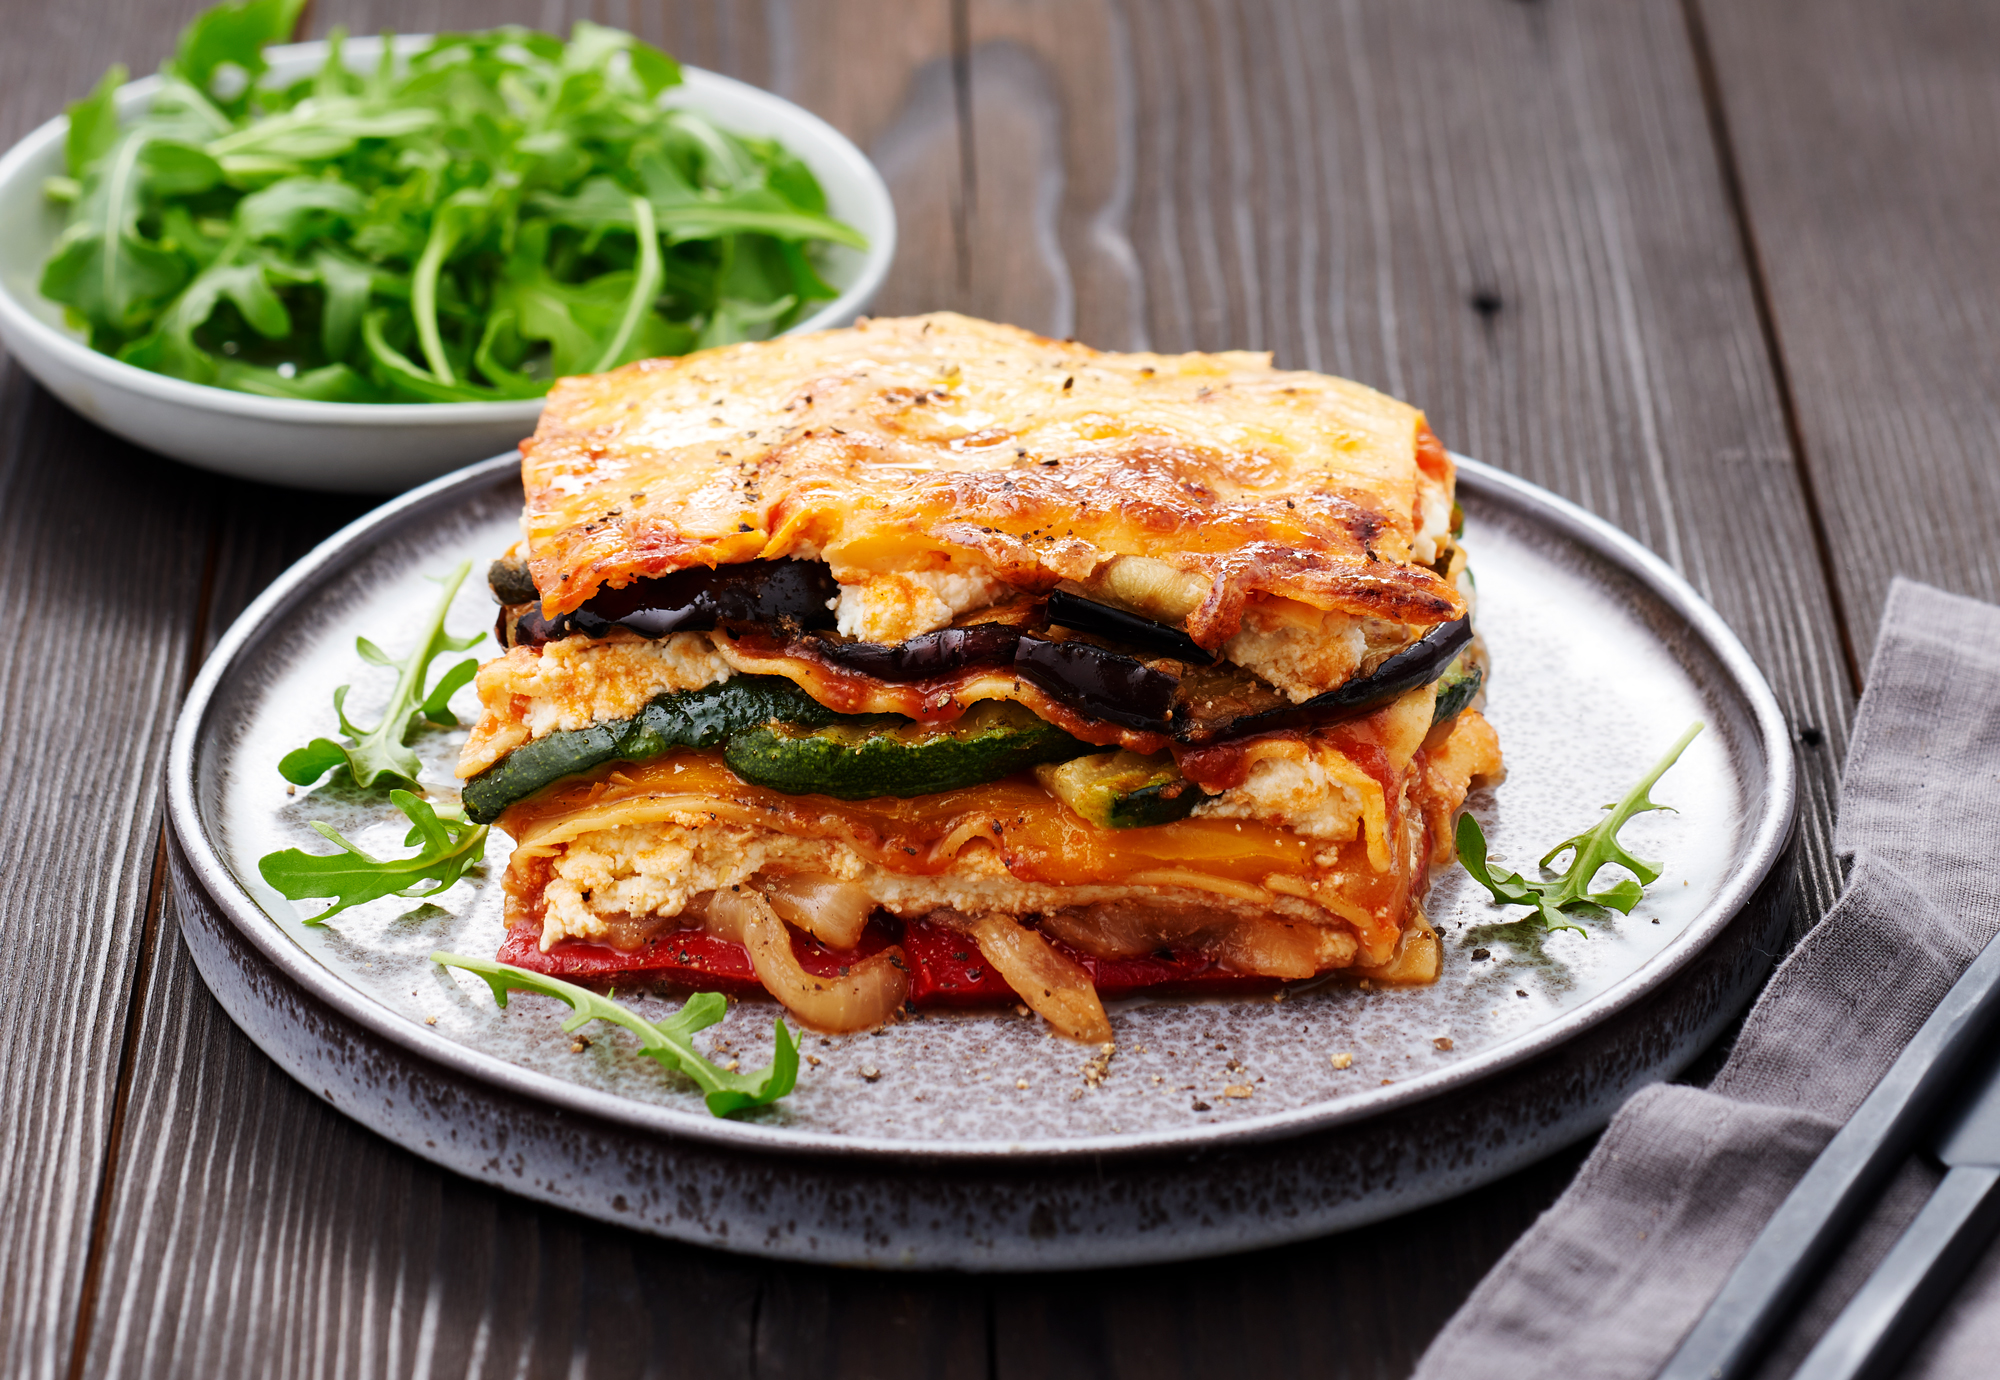 Charred Vegetable Lasagne using Edgell's chef's grill chargrilled vegetable range